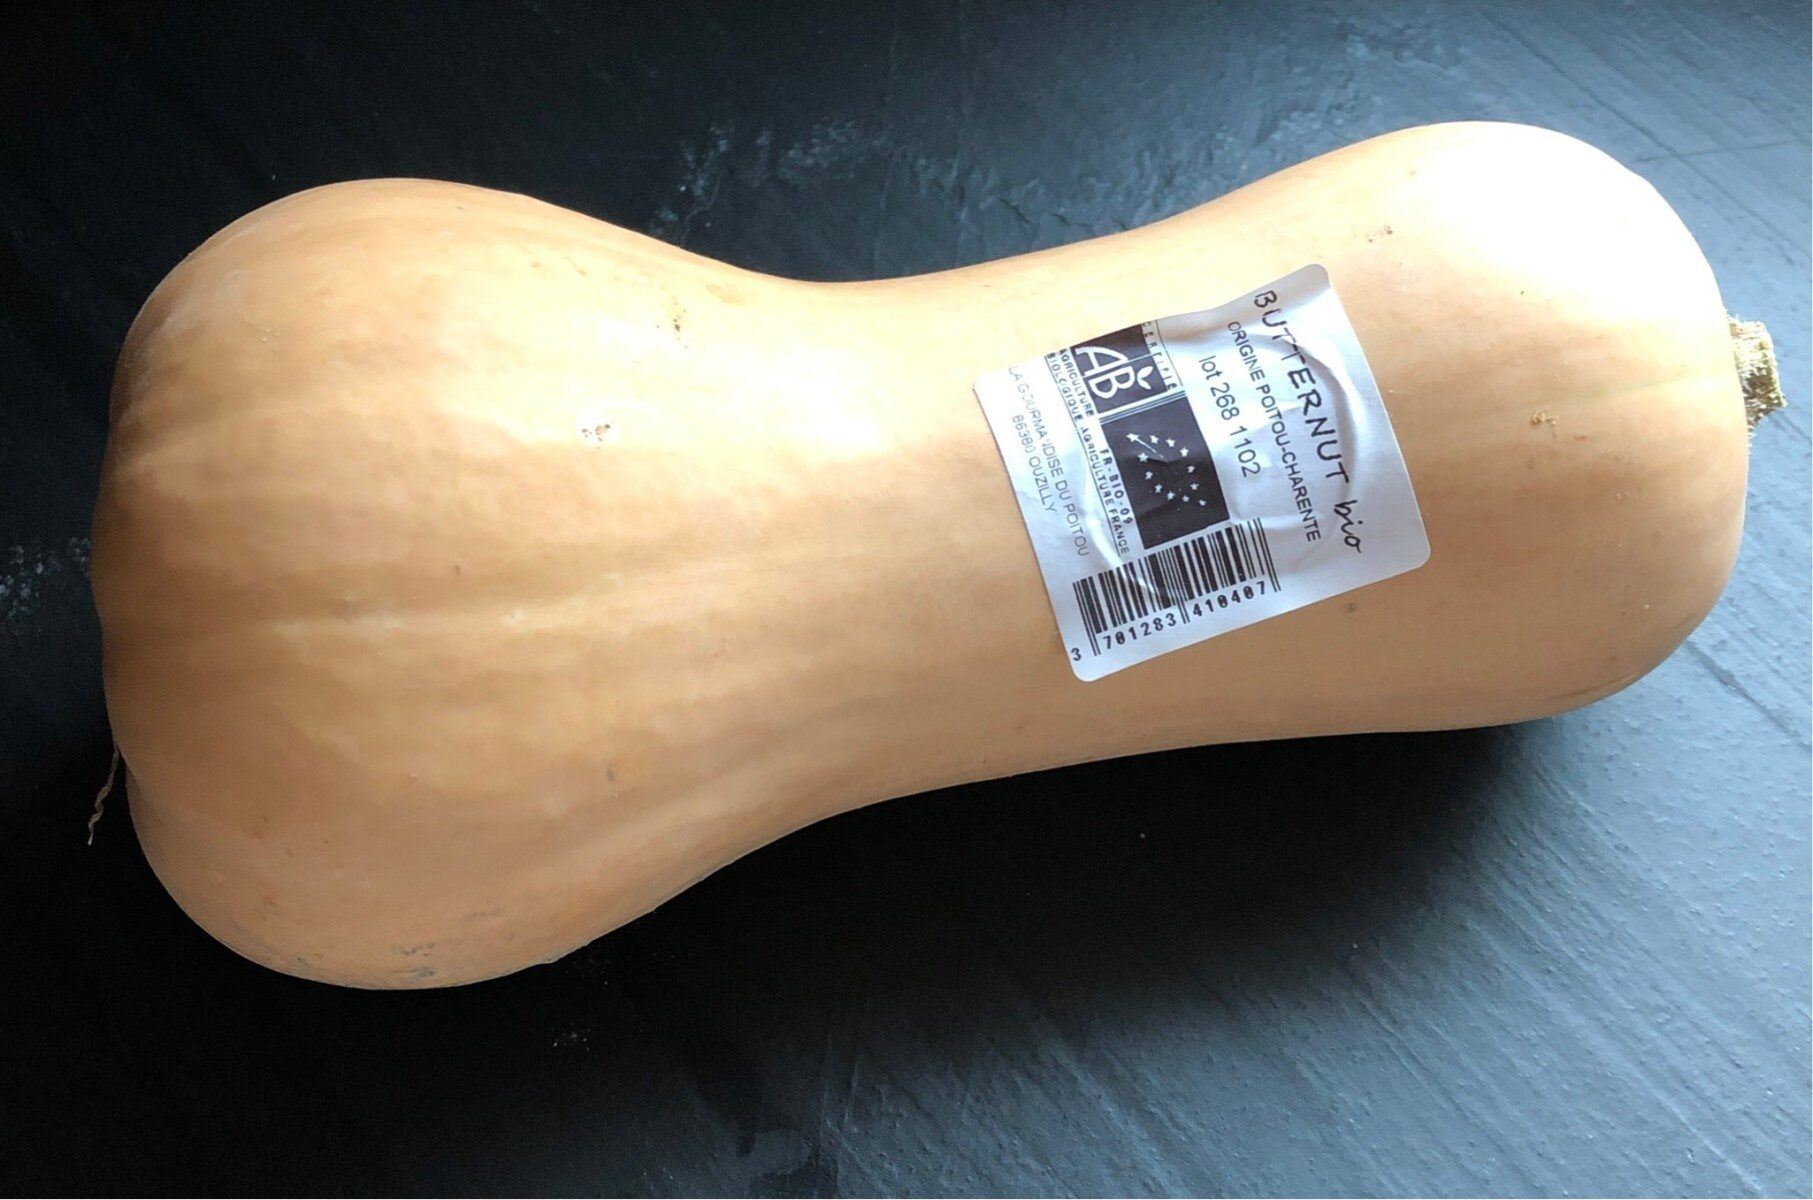 Butternut - Product